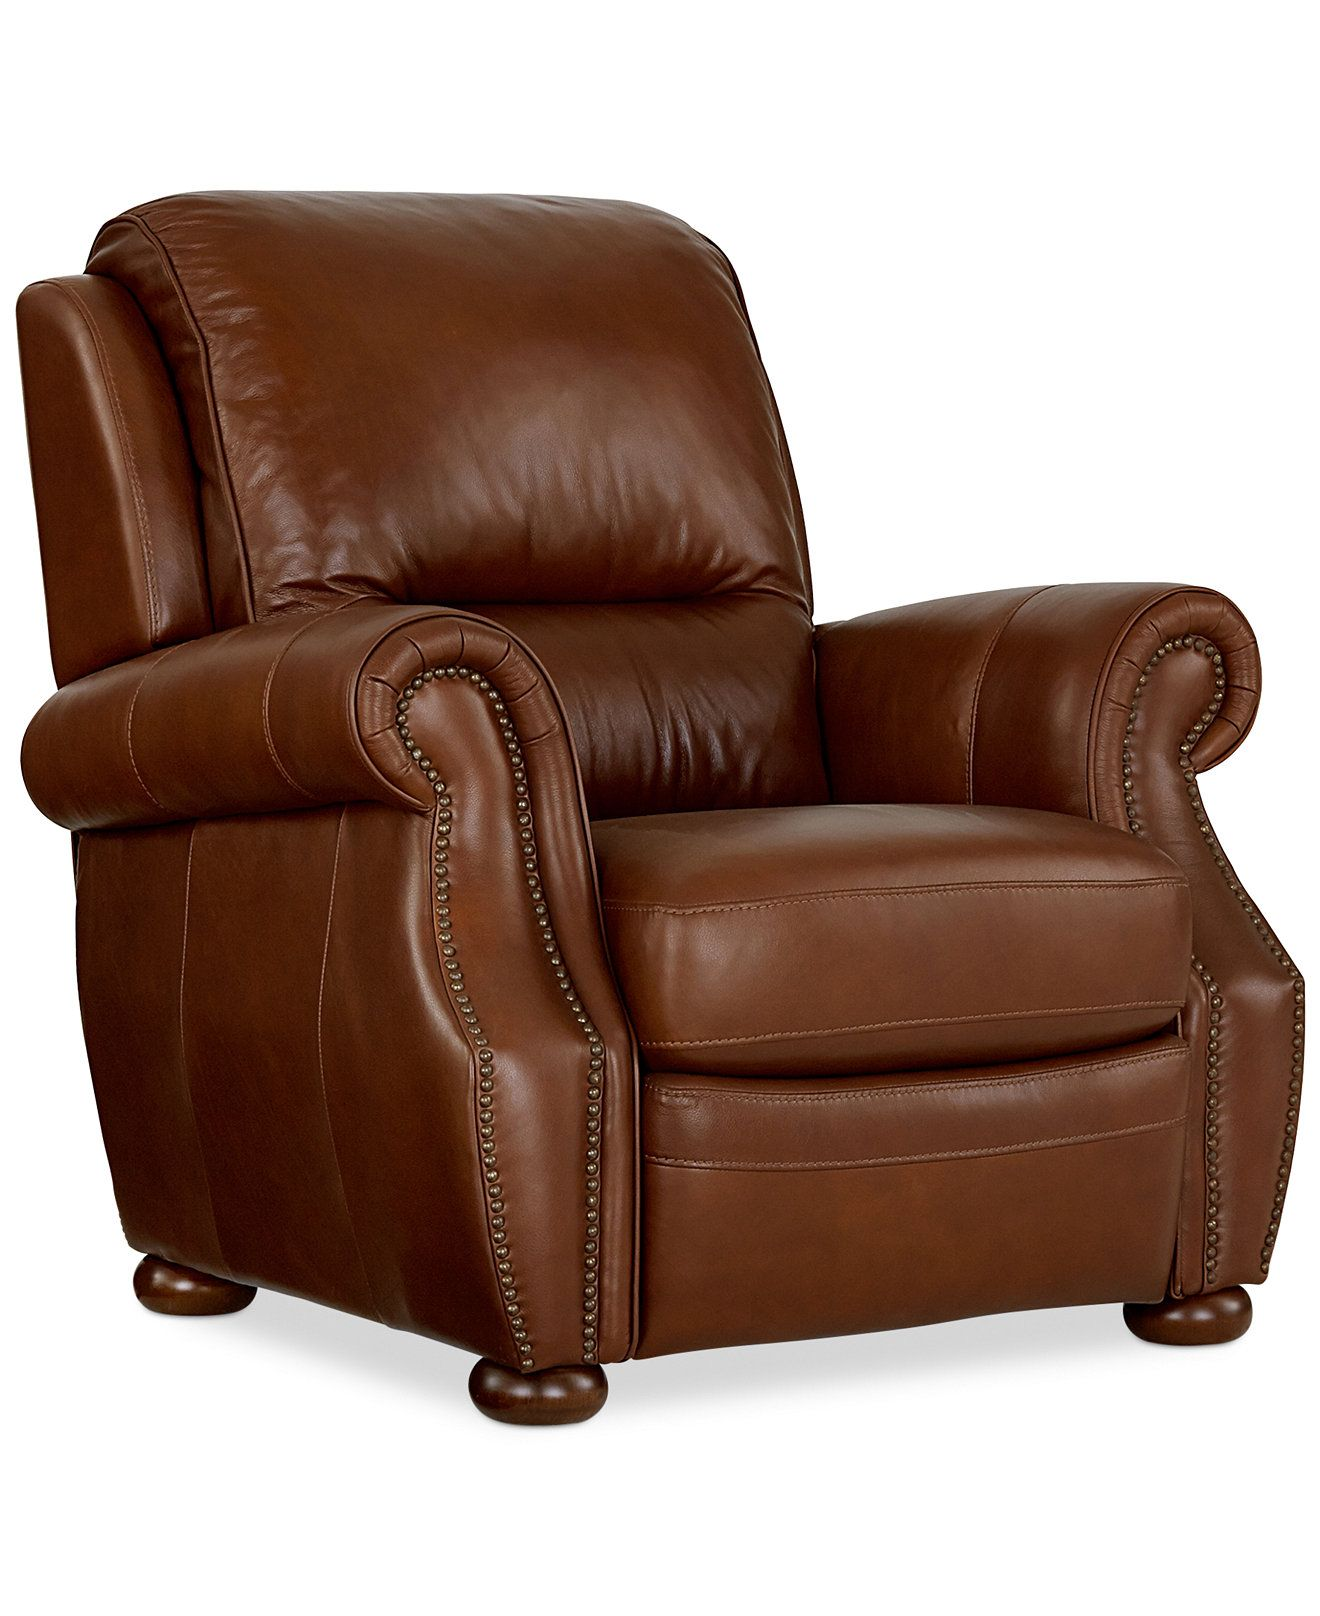 Macys Leather Chair Royce Leather Recliner Chair Chairs And Recliners